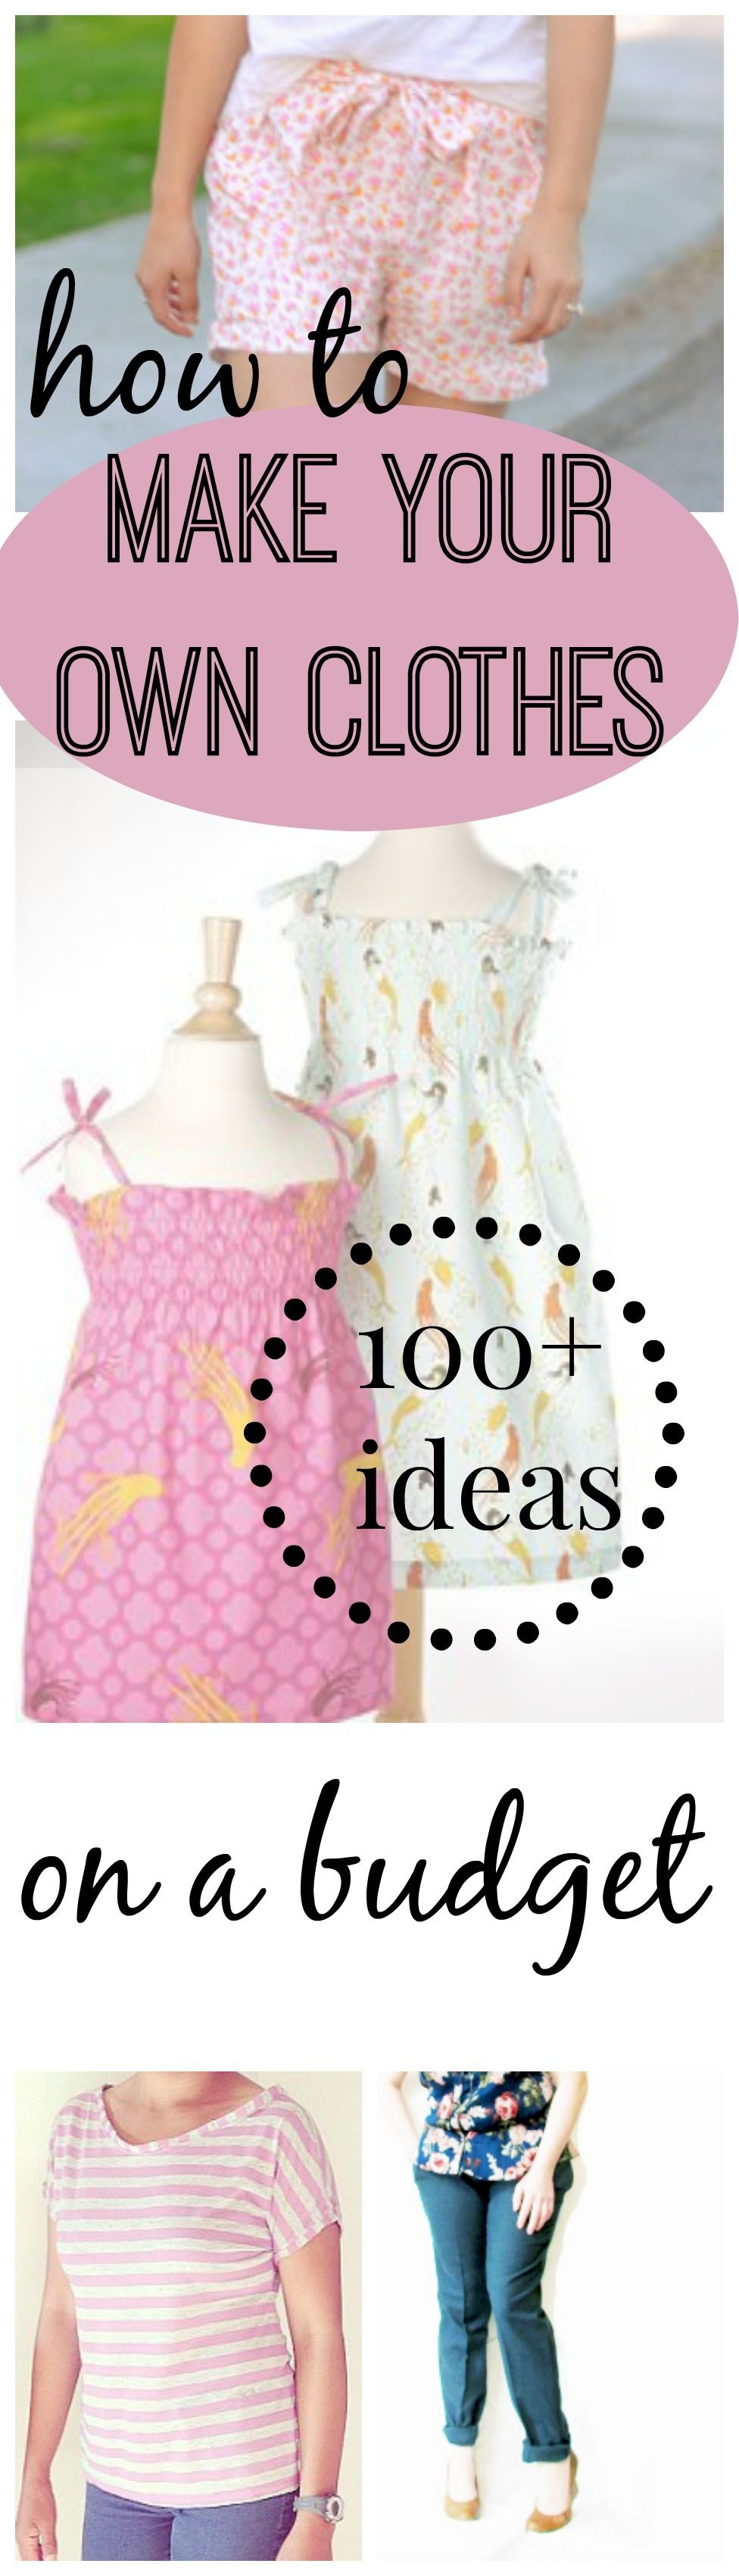 7816b989458dd 173 How to Sew Clothes Ideas: Tips for Making Your Own Clothes on the Cheap    AllFreeSewing.com